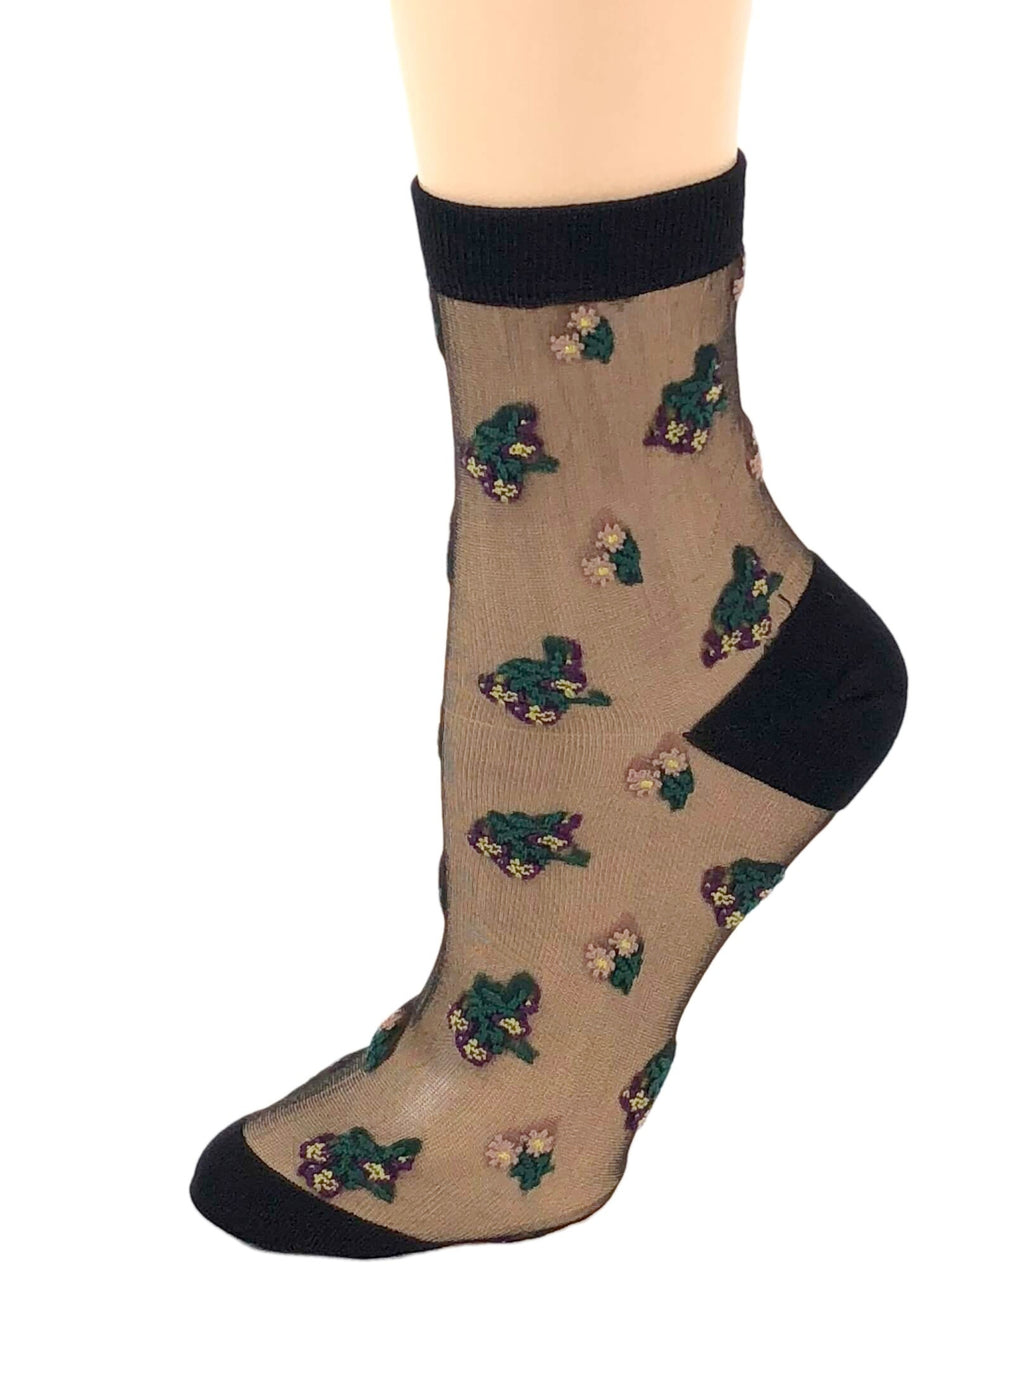 Tender Flowers Sheer Socks - Global Trendz Fashion®